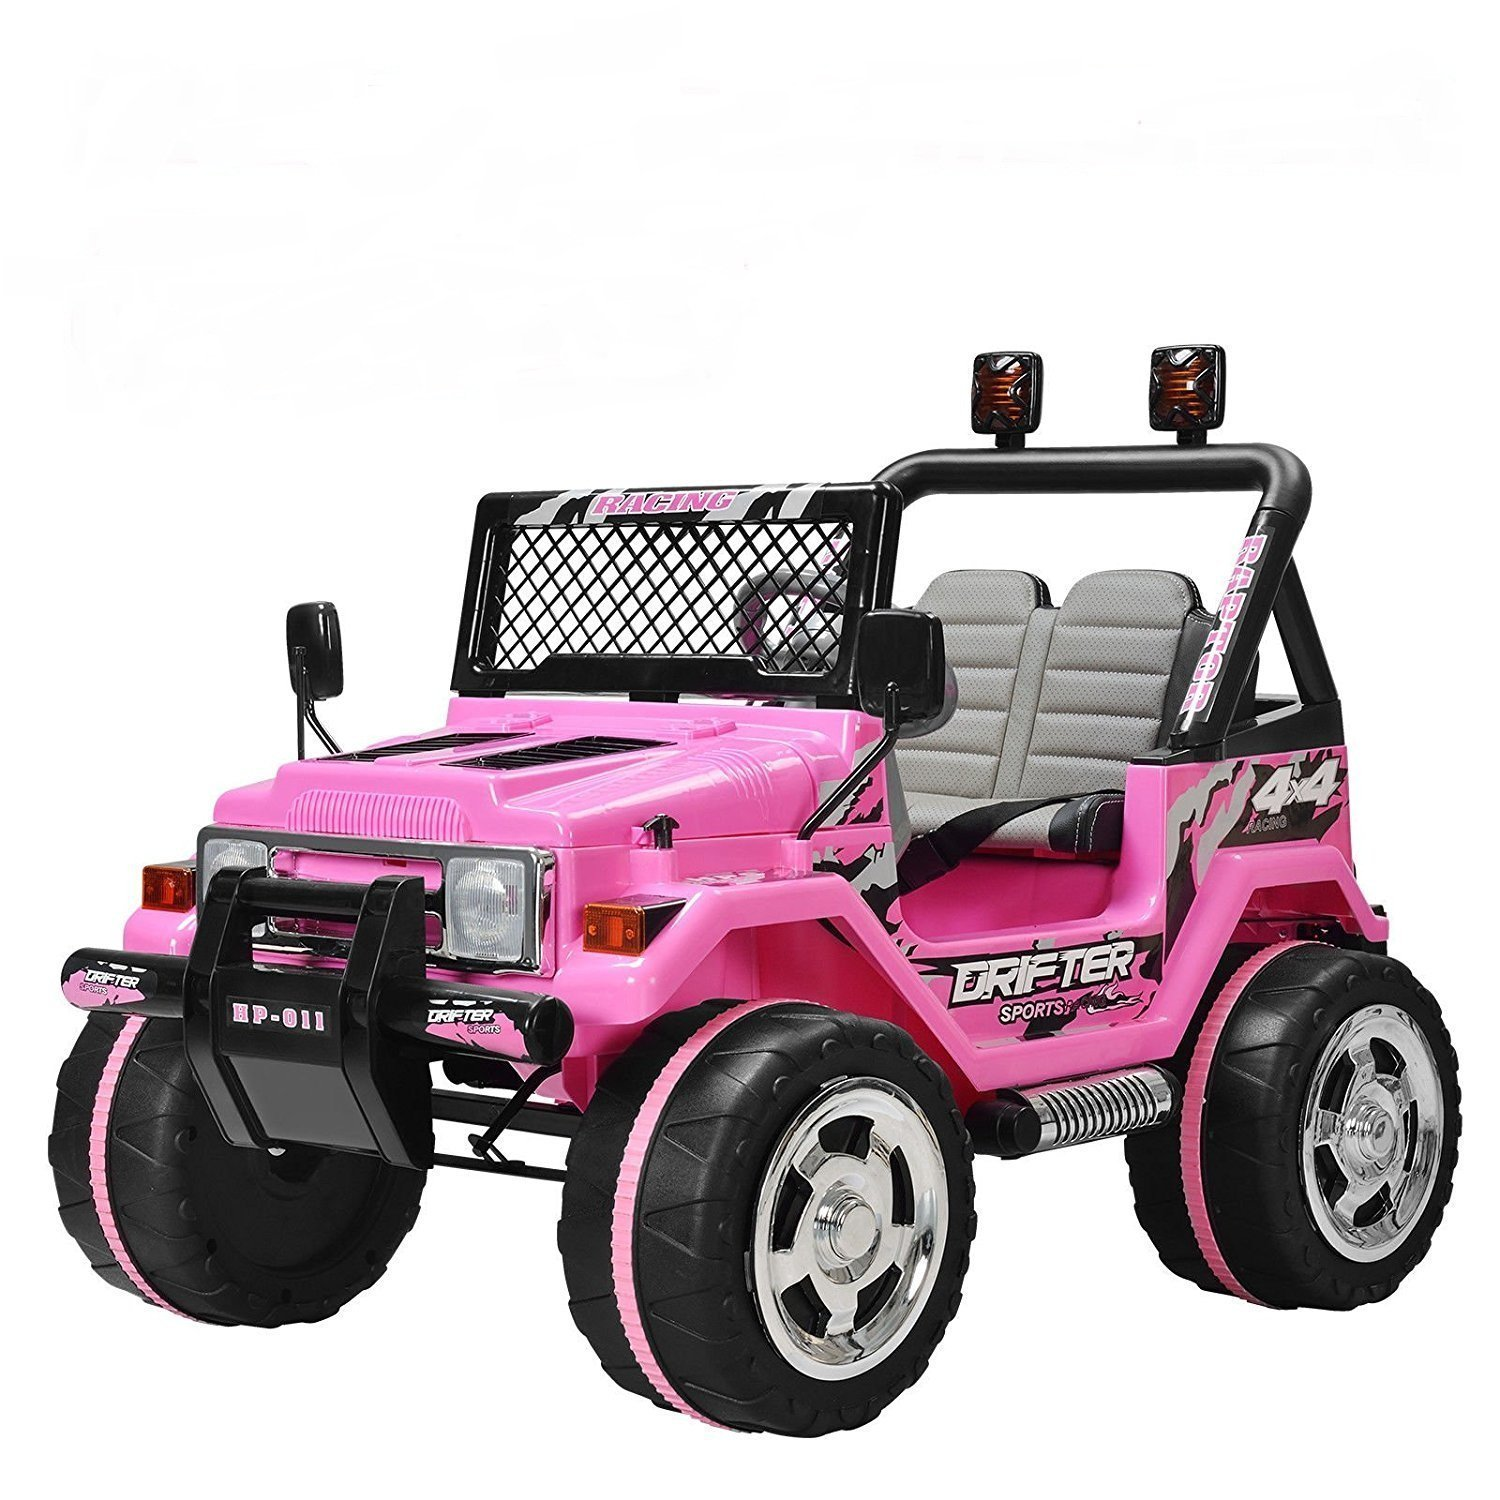 Uenjoy Kid's Ride on Car Ride on Truck Power Wheels 12V 2 Speeds with Remote Control ... by Uenjoy